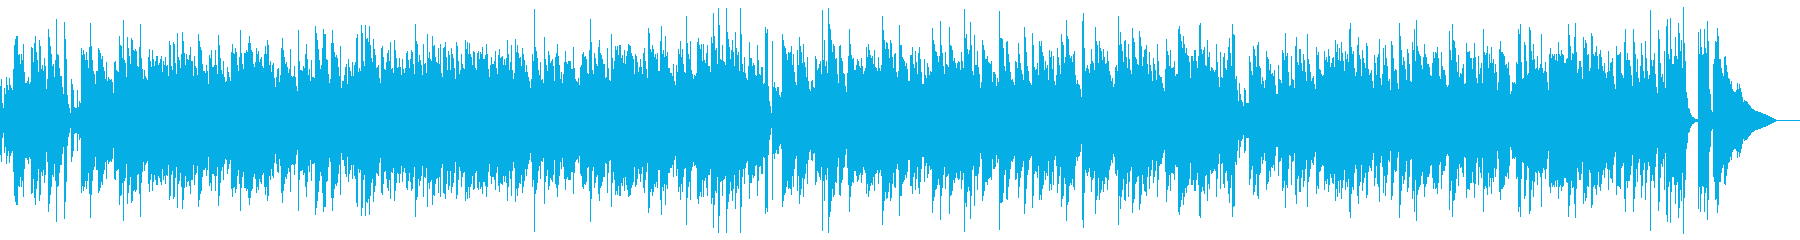 Quiet adult country music's reproduced waveform